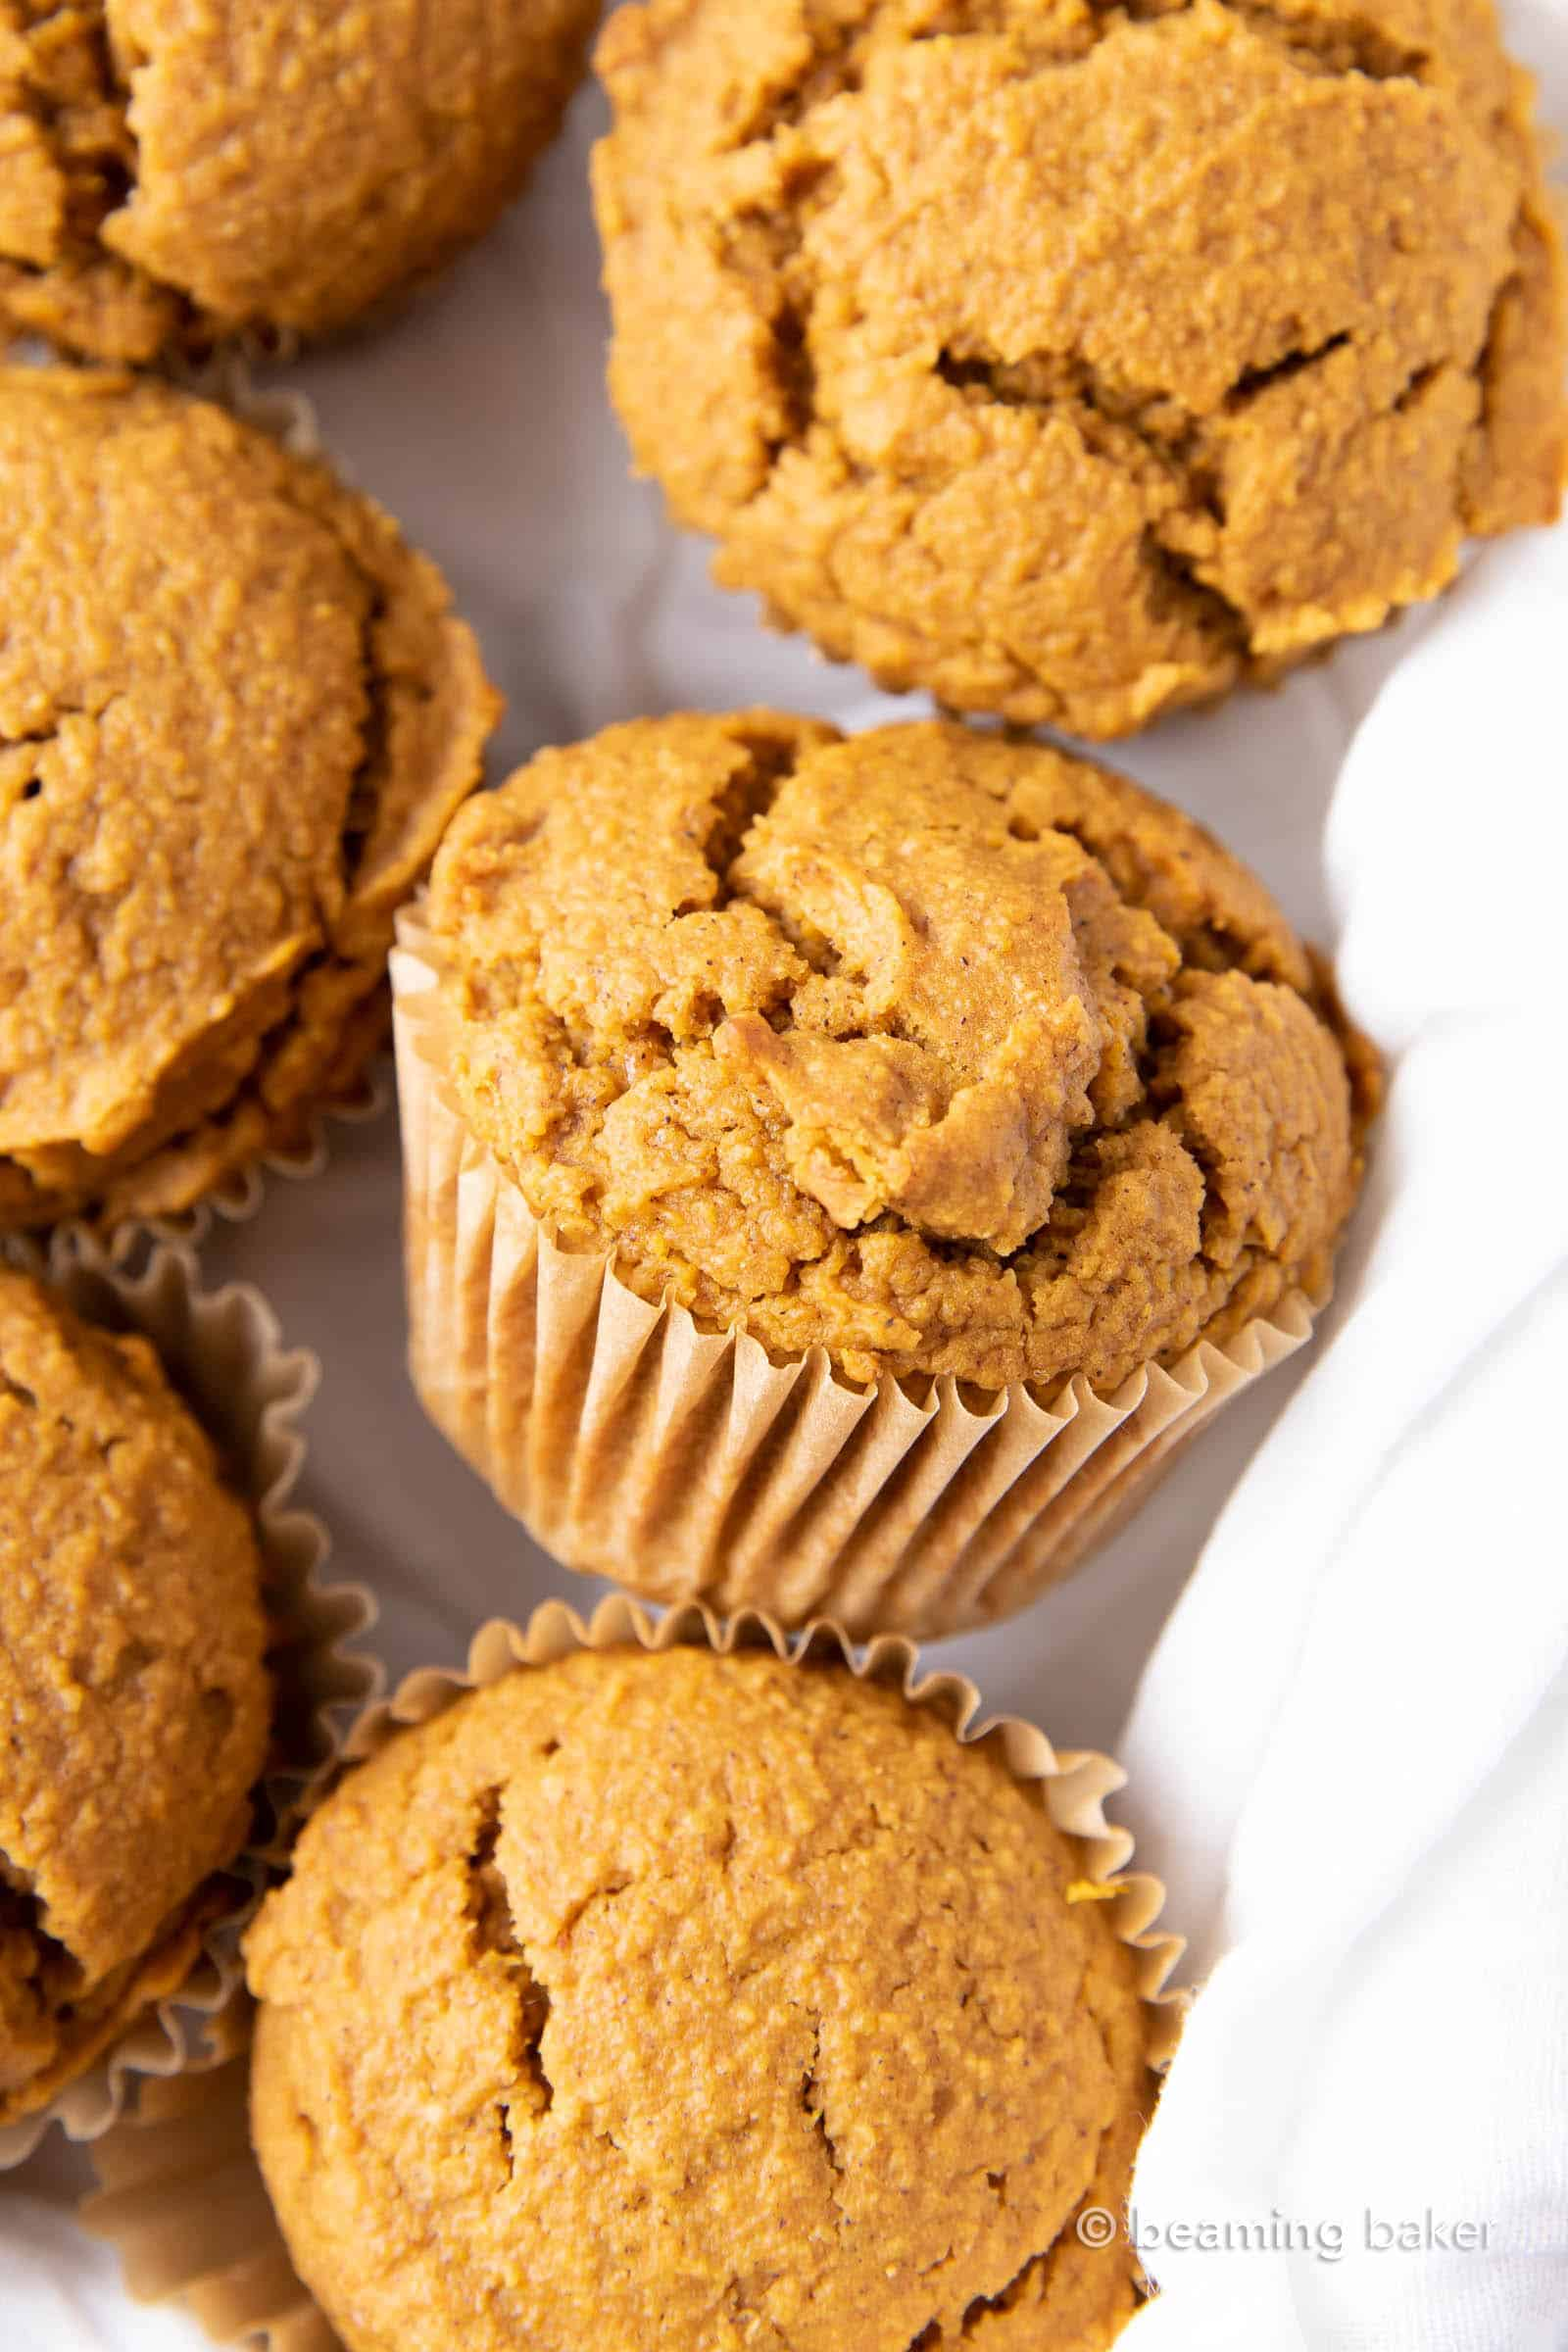 Vegan Pumpkin Muffins: this vegan pumpkin muffin recipe is easy & eggless! The best vegan pumpkin muffins – moist, soft & tender crumb, perfectly spiced. #Vegan #Pumpkin #Muffins #Fall | Recipe at BeamingBaker.com